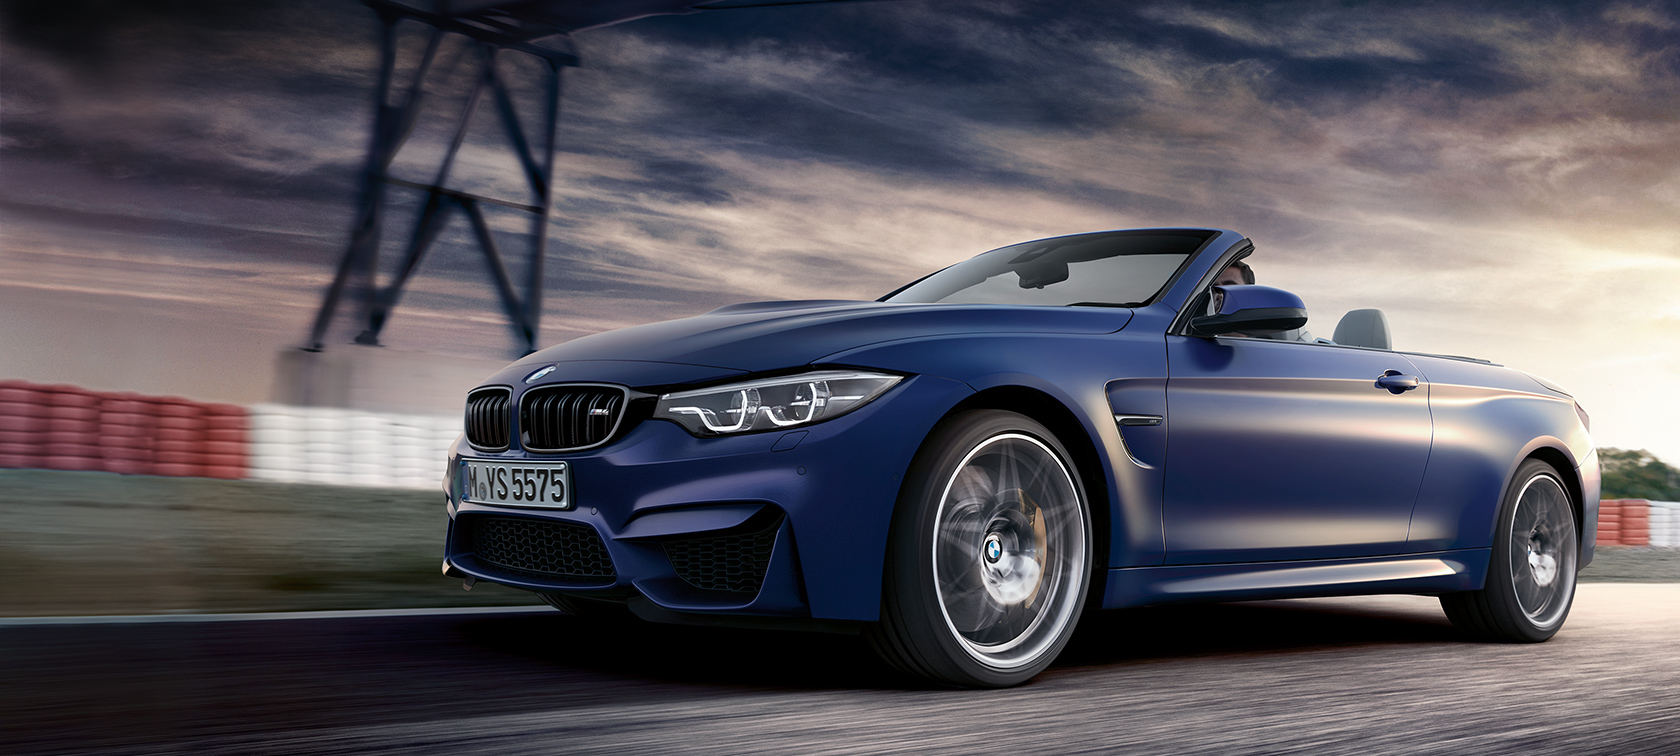 Bmw M4 Convertible Introduction